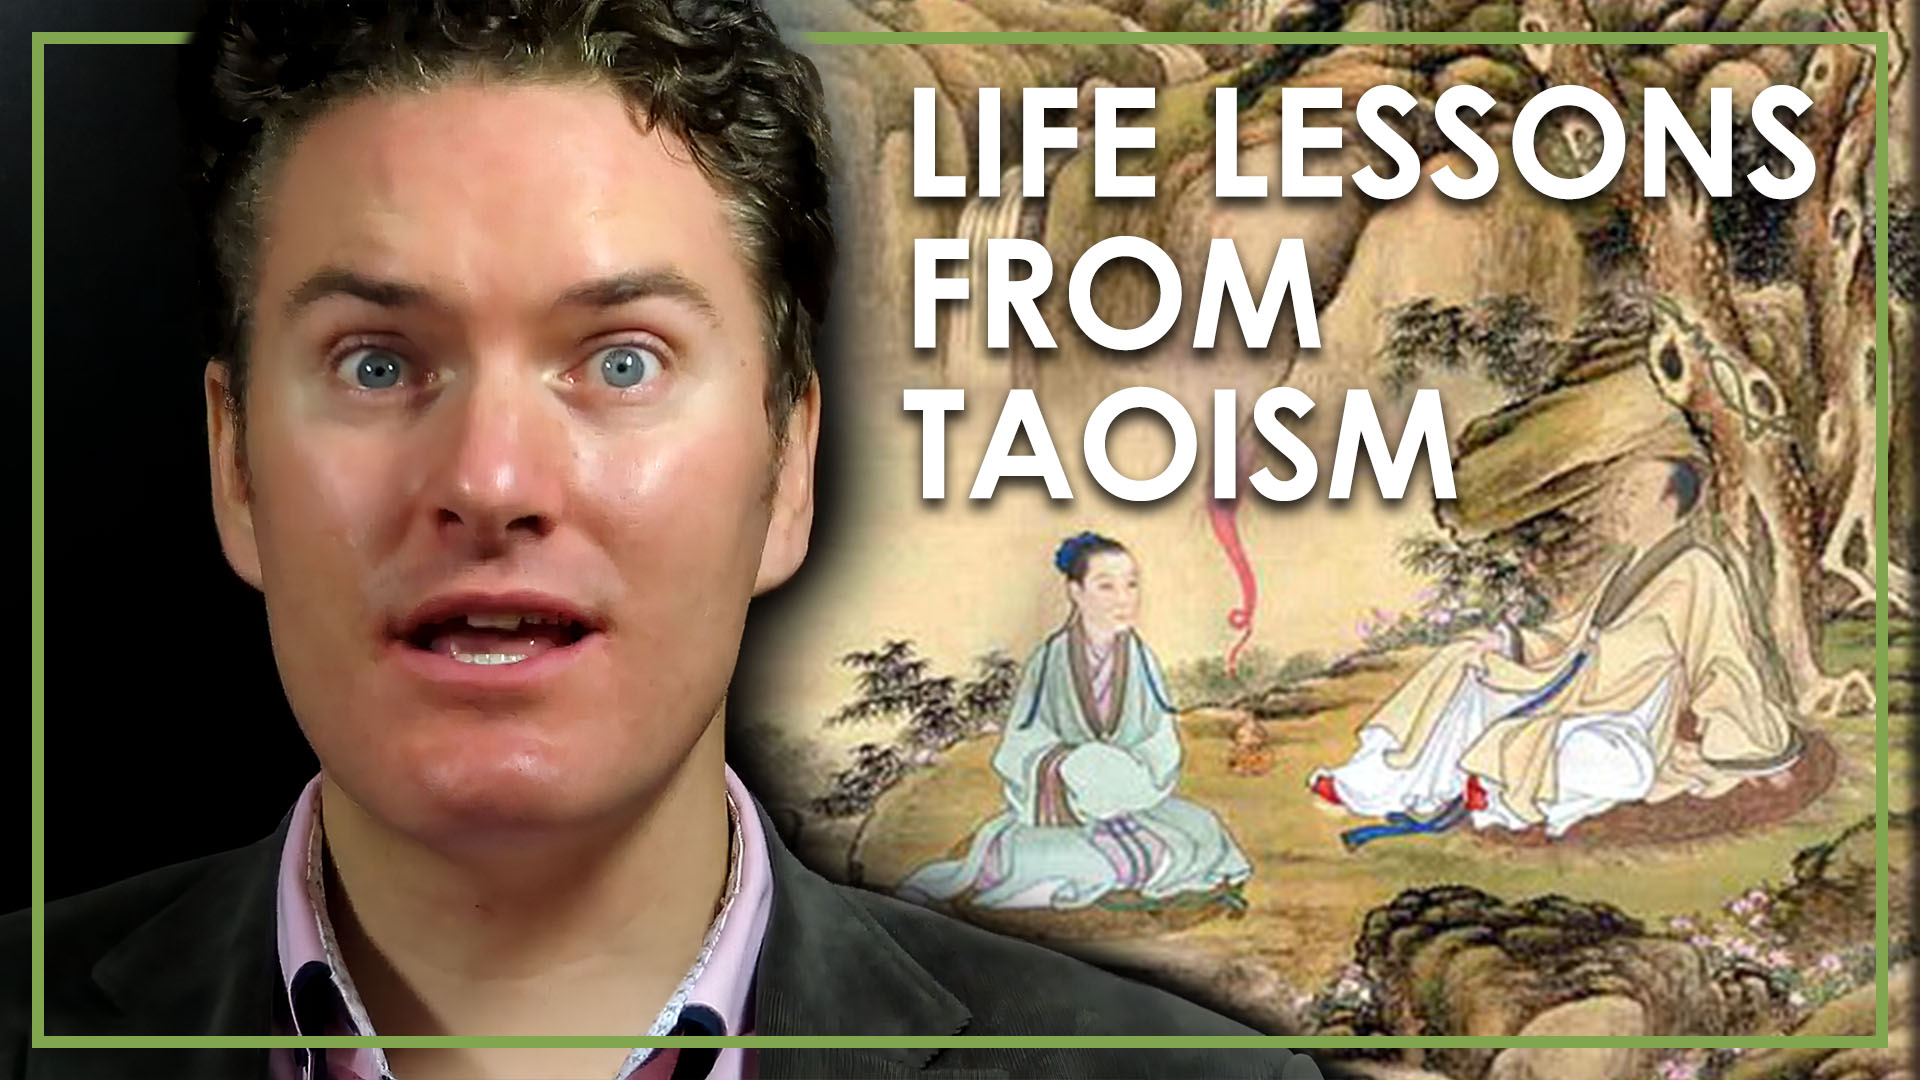 https://docconor.azurewebsites.net/2020/02/07/10-life-lessons-from-taoism/